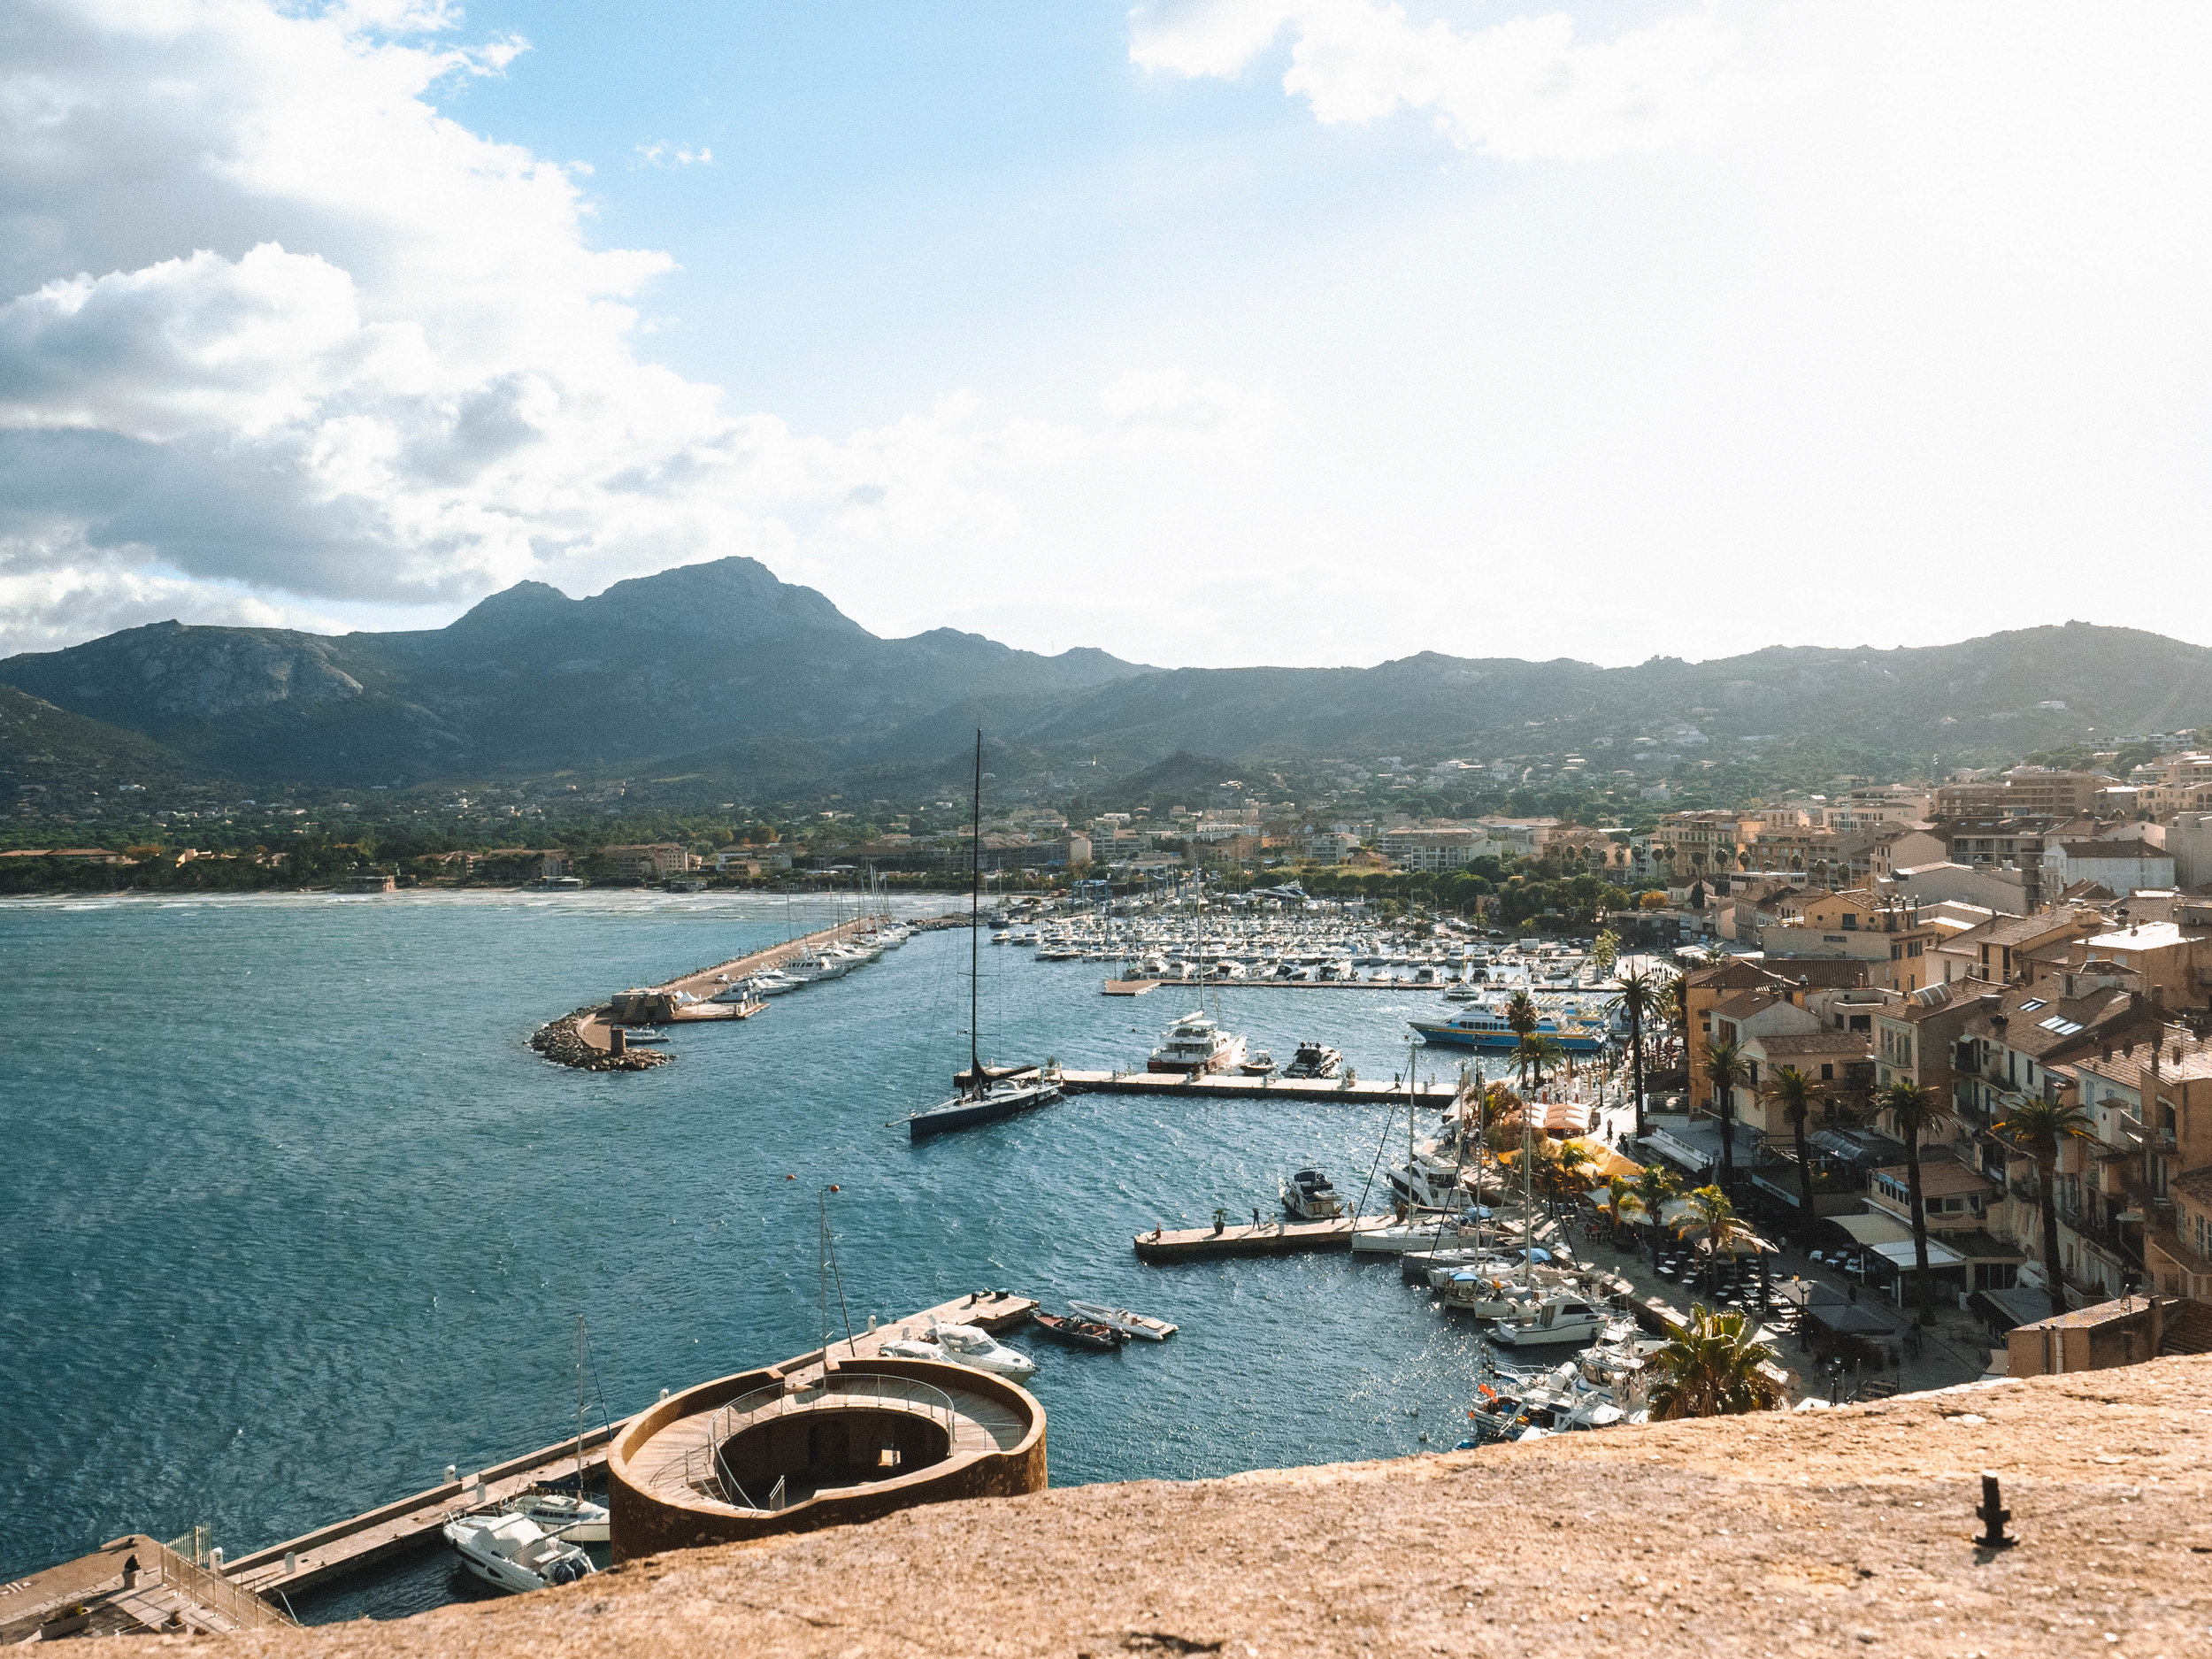 Corsica is a beautiful, secluded island in the Mediterranean Sea. With countless hiking trails, pristine beaches and small towns, it's the perfect way to escape the hustle of a European vacation for a few days. Take a quick flight to Calvi, Corsica for an amazing experience different than anywhere else in France! #france #corsica #hiking #island